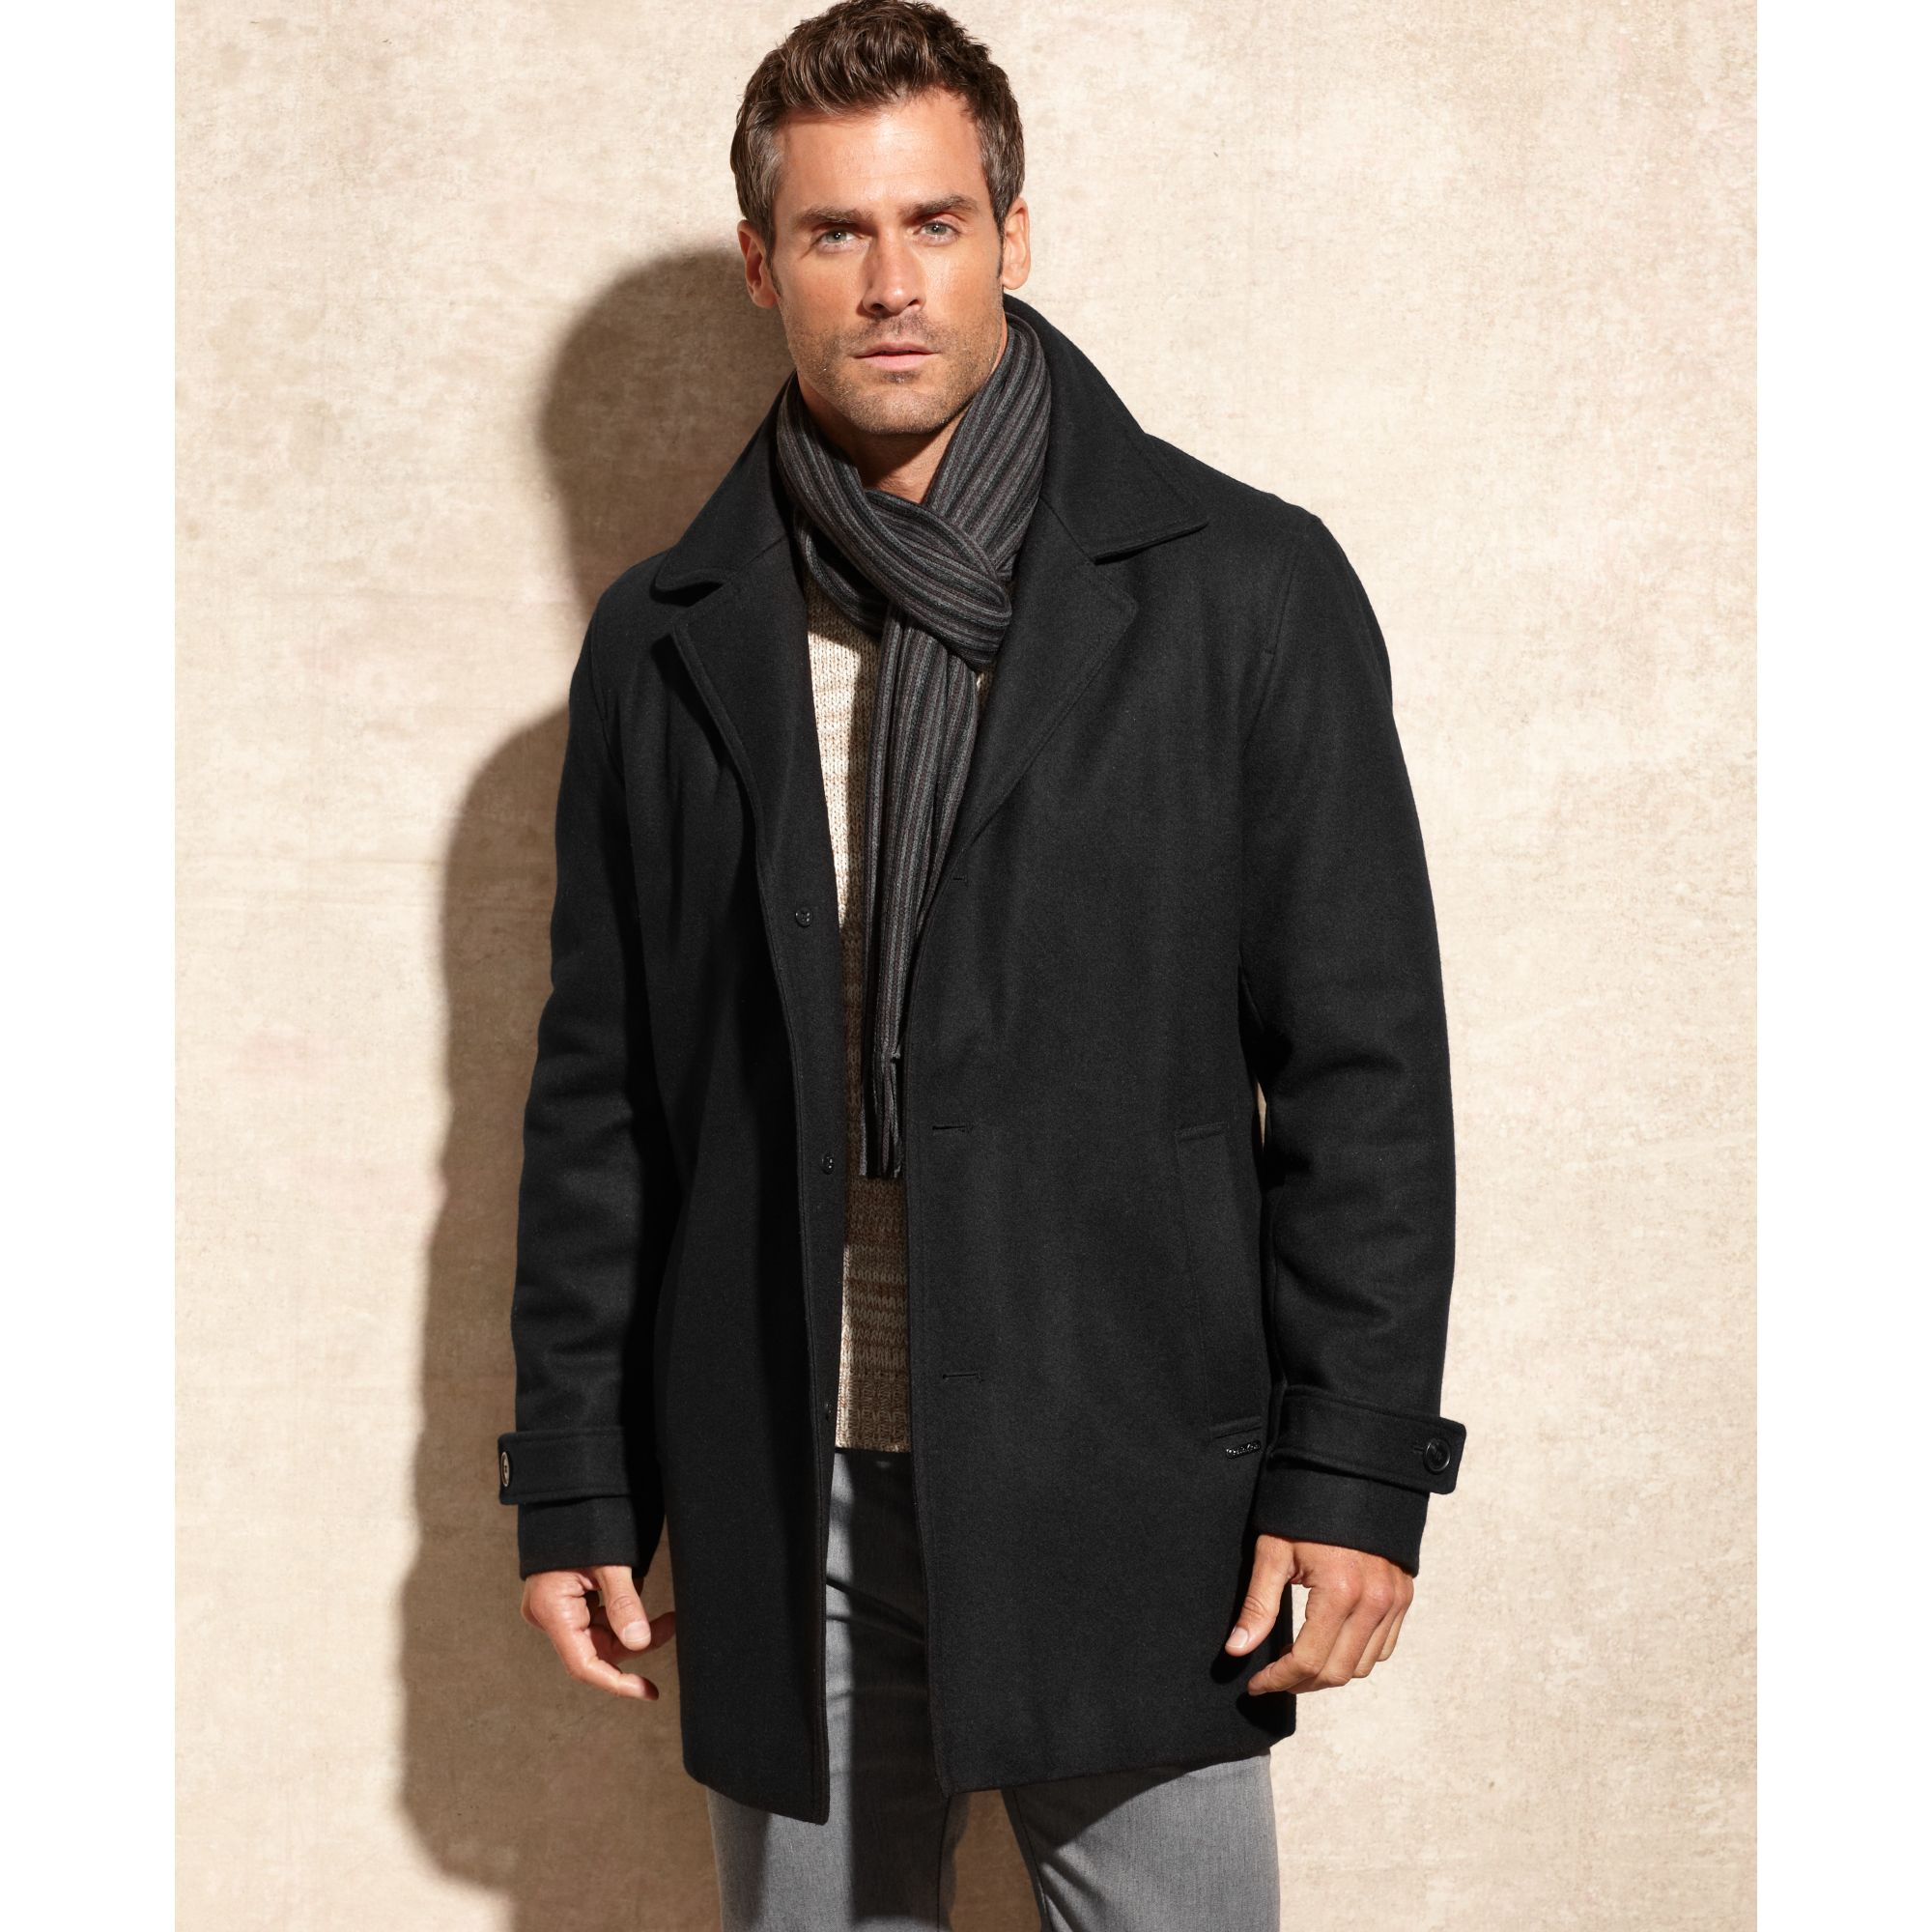 Calvin klein Melton Wool Blend Car Coat with Scarf in Black for